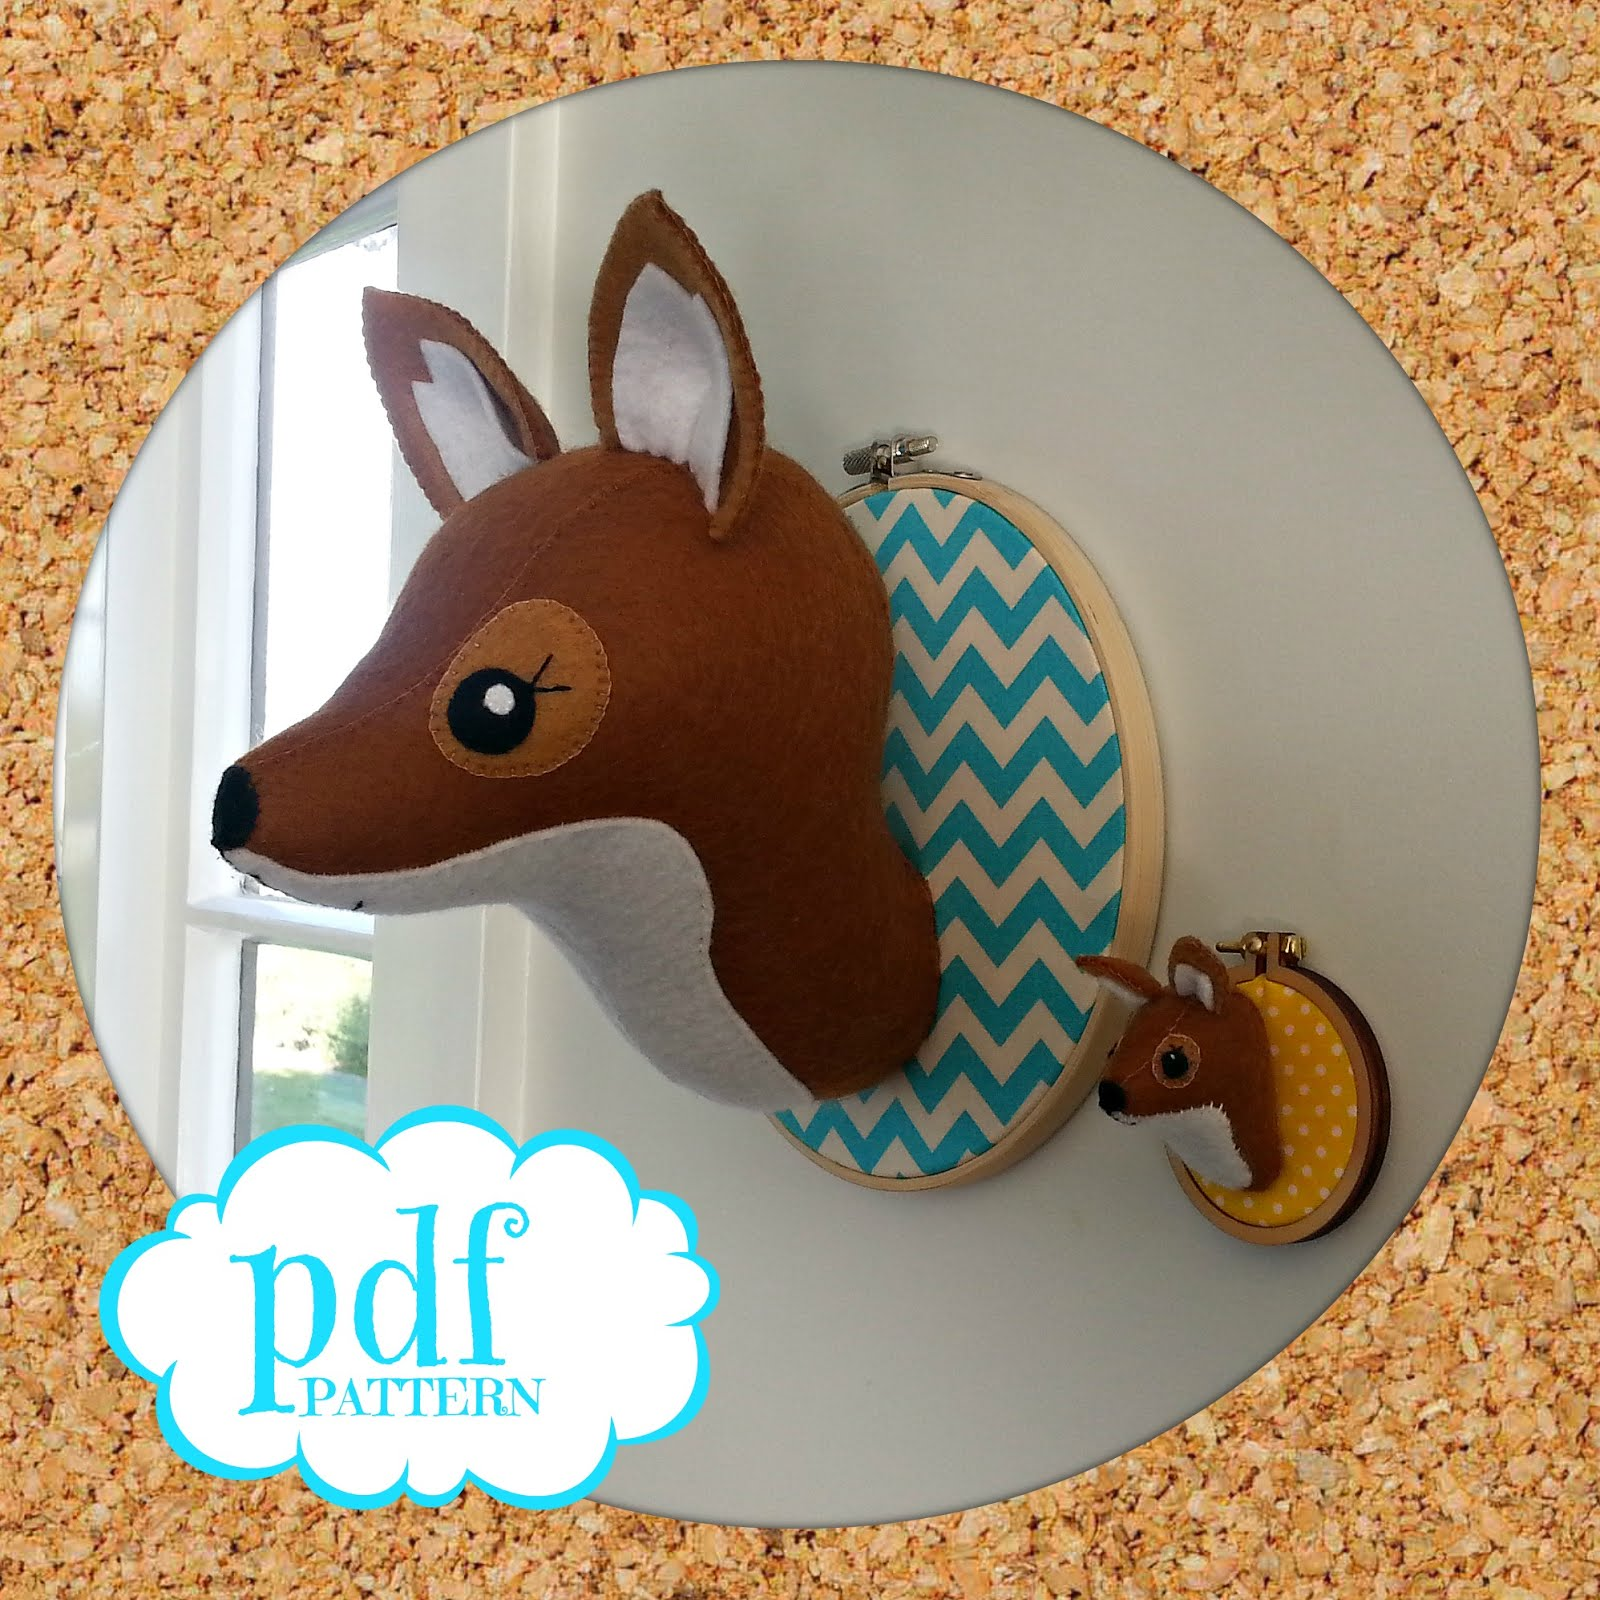 Get your fox pattern HERE!